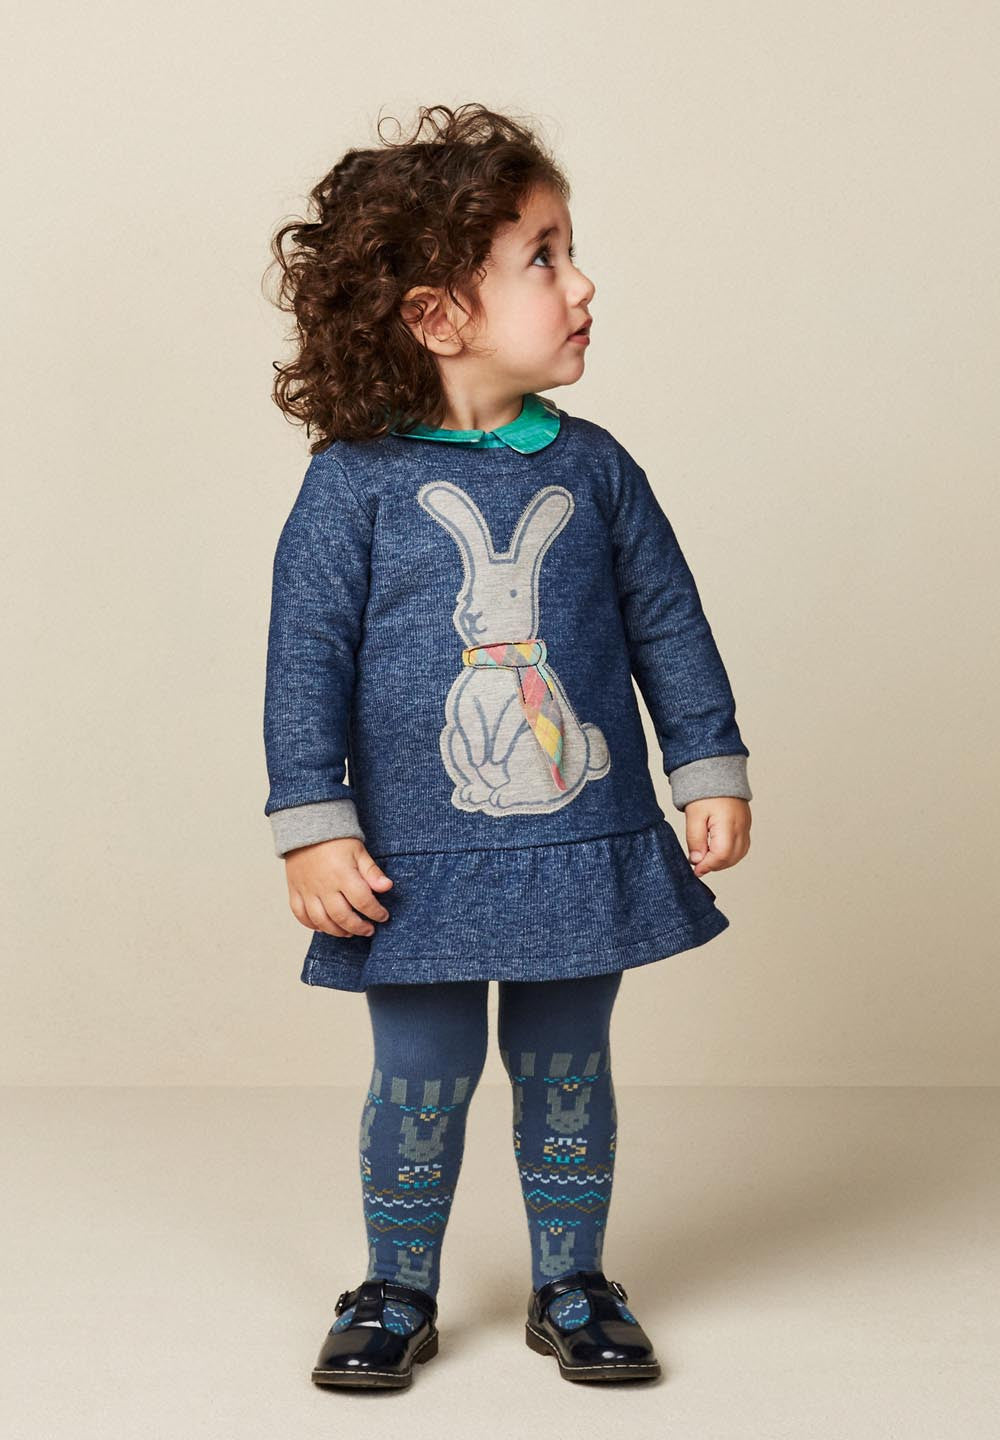 AW17 Oilily Girls Meadows Malliot 55 Jacquard Rabbits Blue Tights - Liquorice Kids